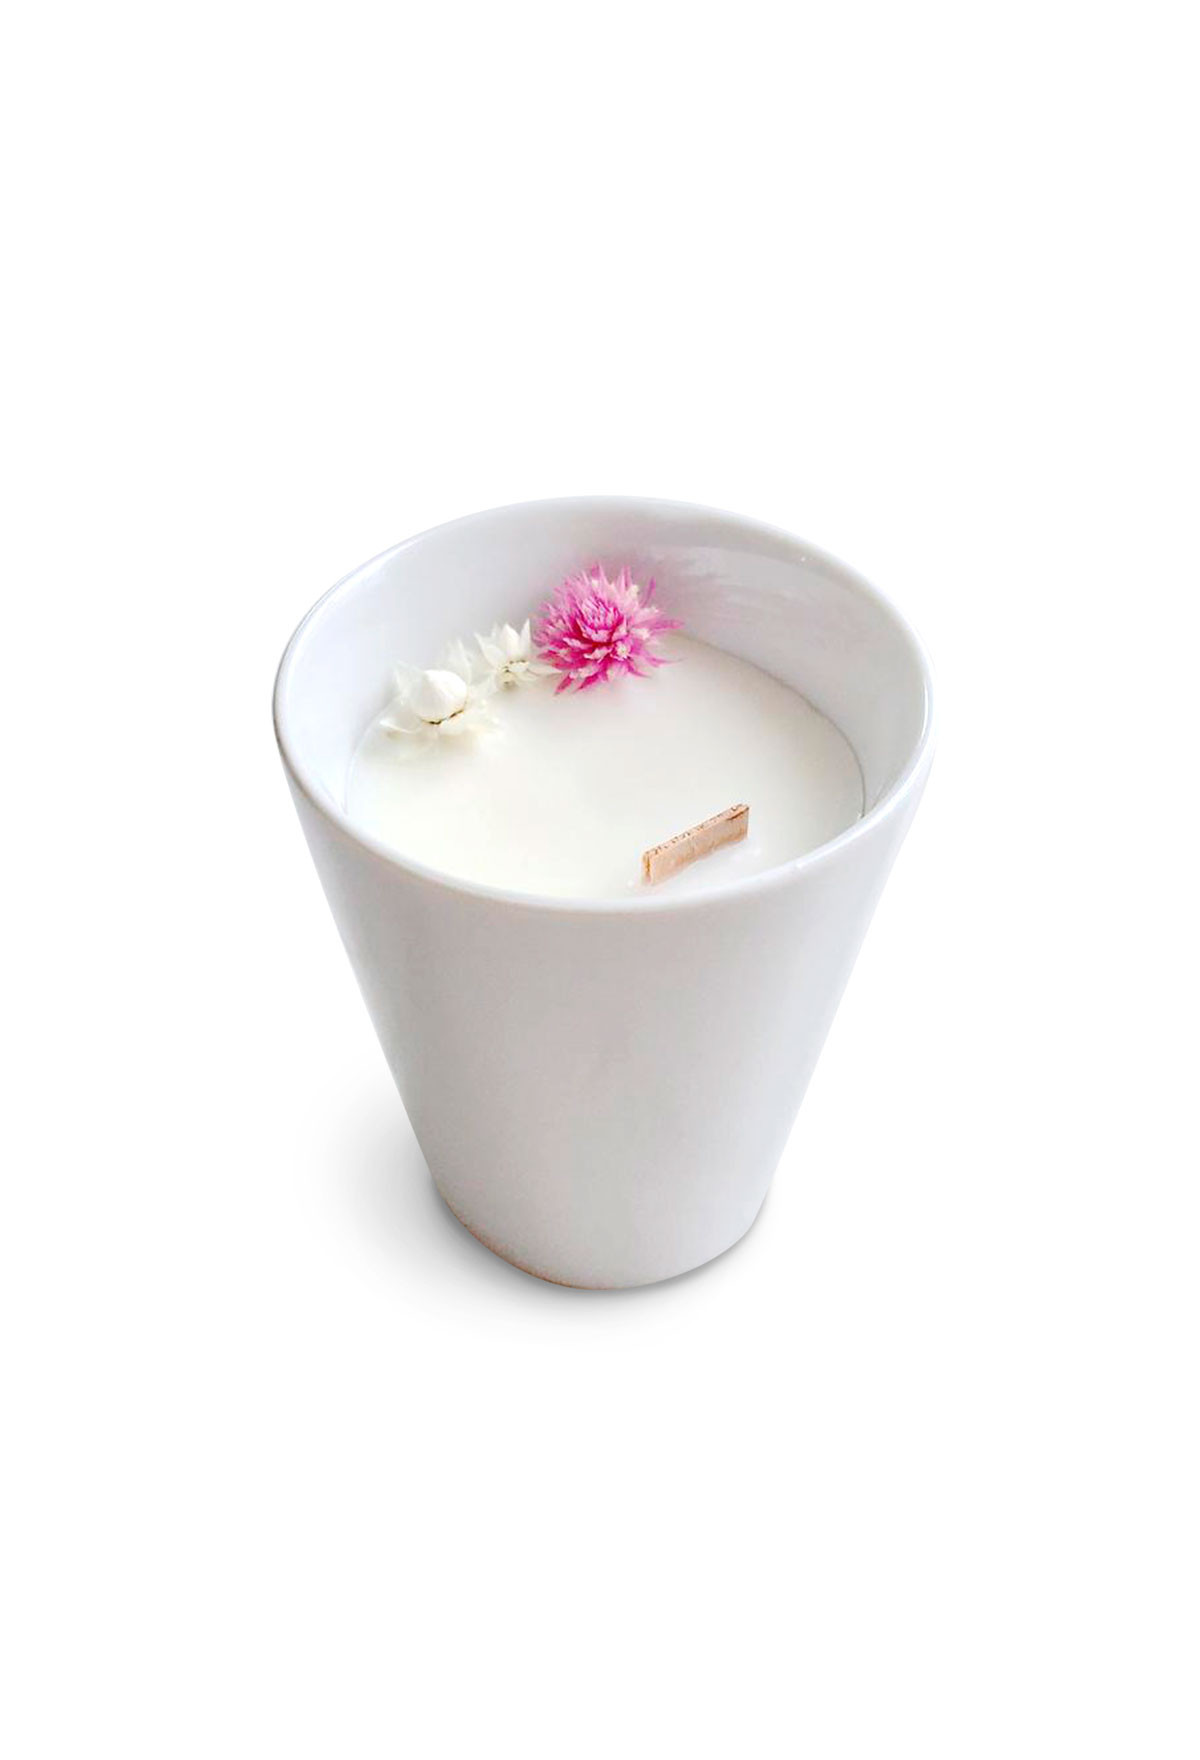 Floral candle - Jamine - Small